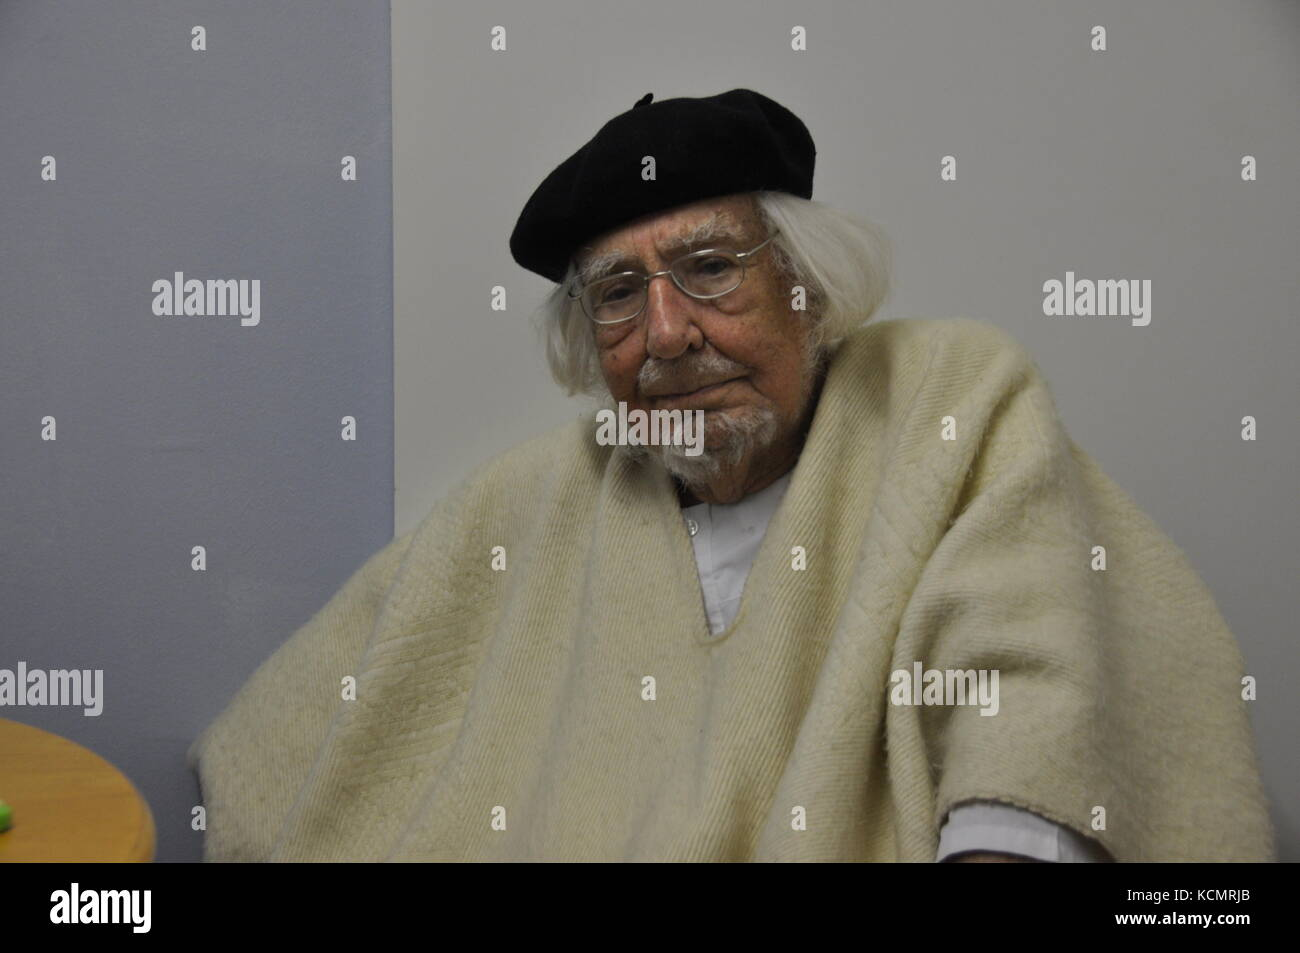 GERMANY - MARCH 5, 2015: Ernesto Cardenal, Nicaraguan Catholic priest, poet and politician, visit Magdeburg. - Stock Image